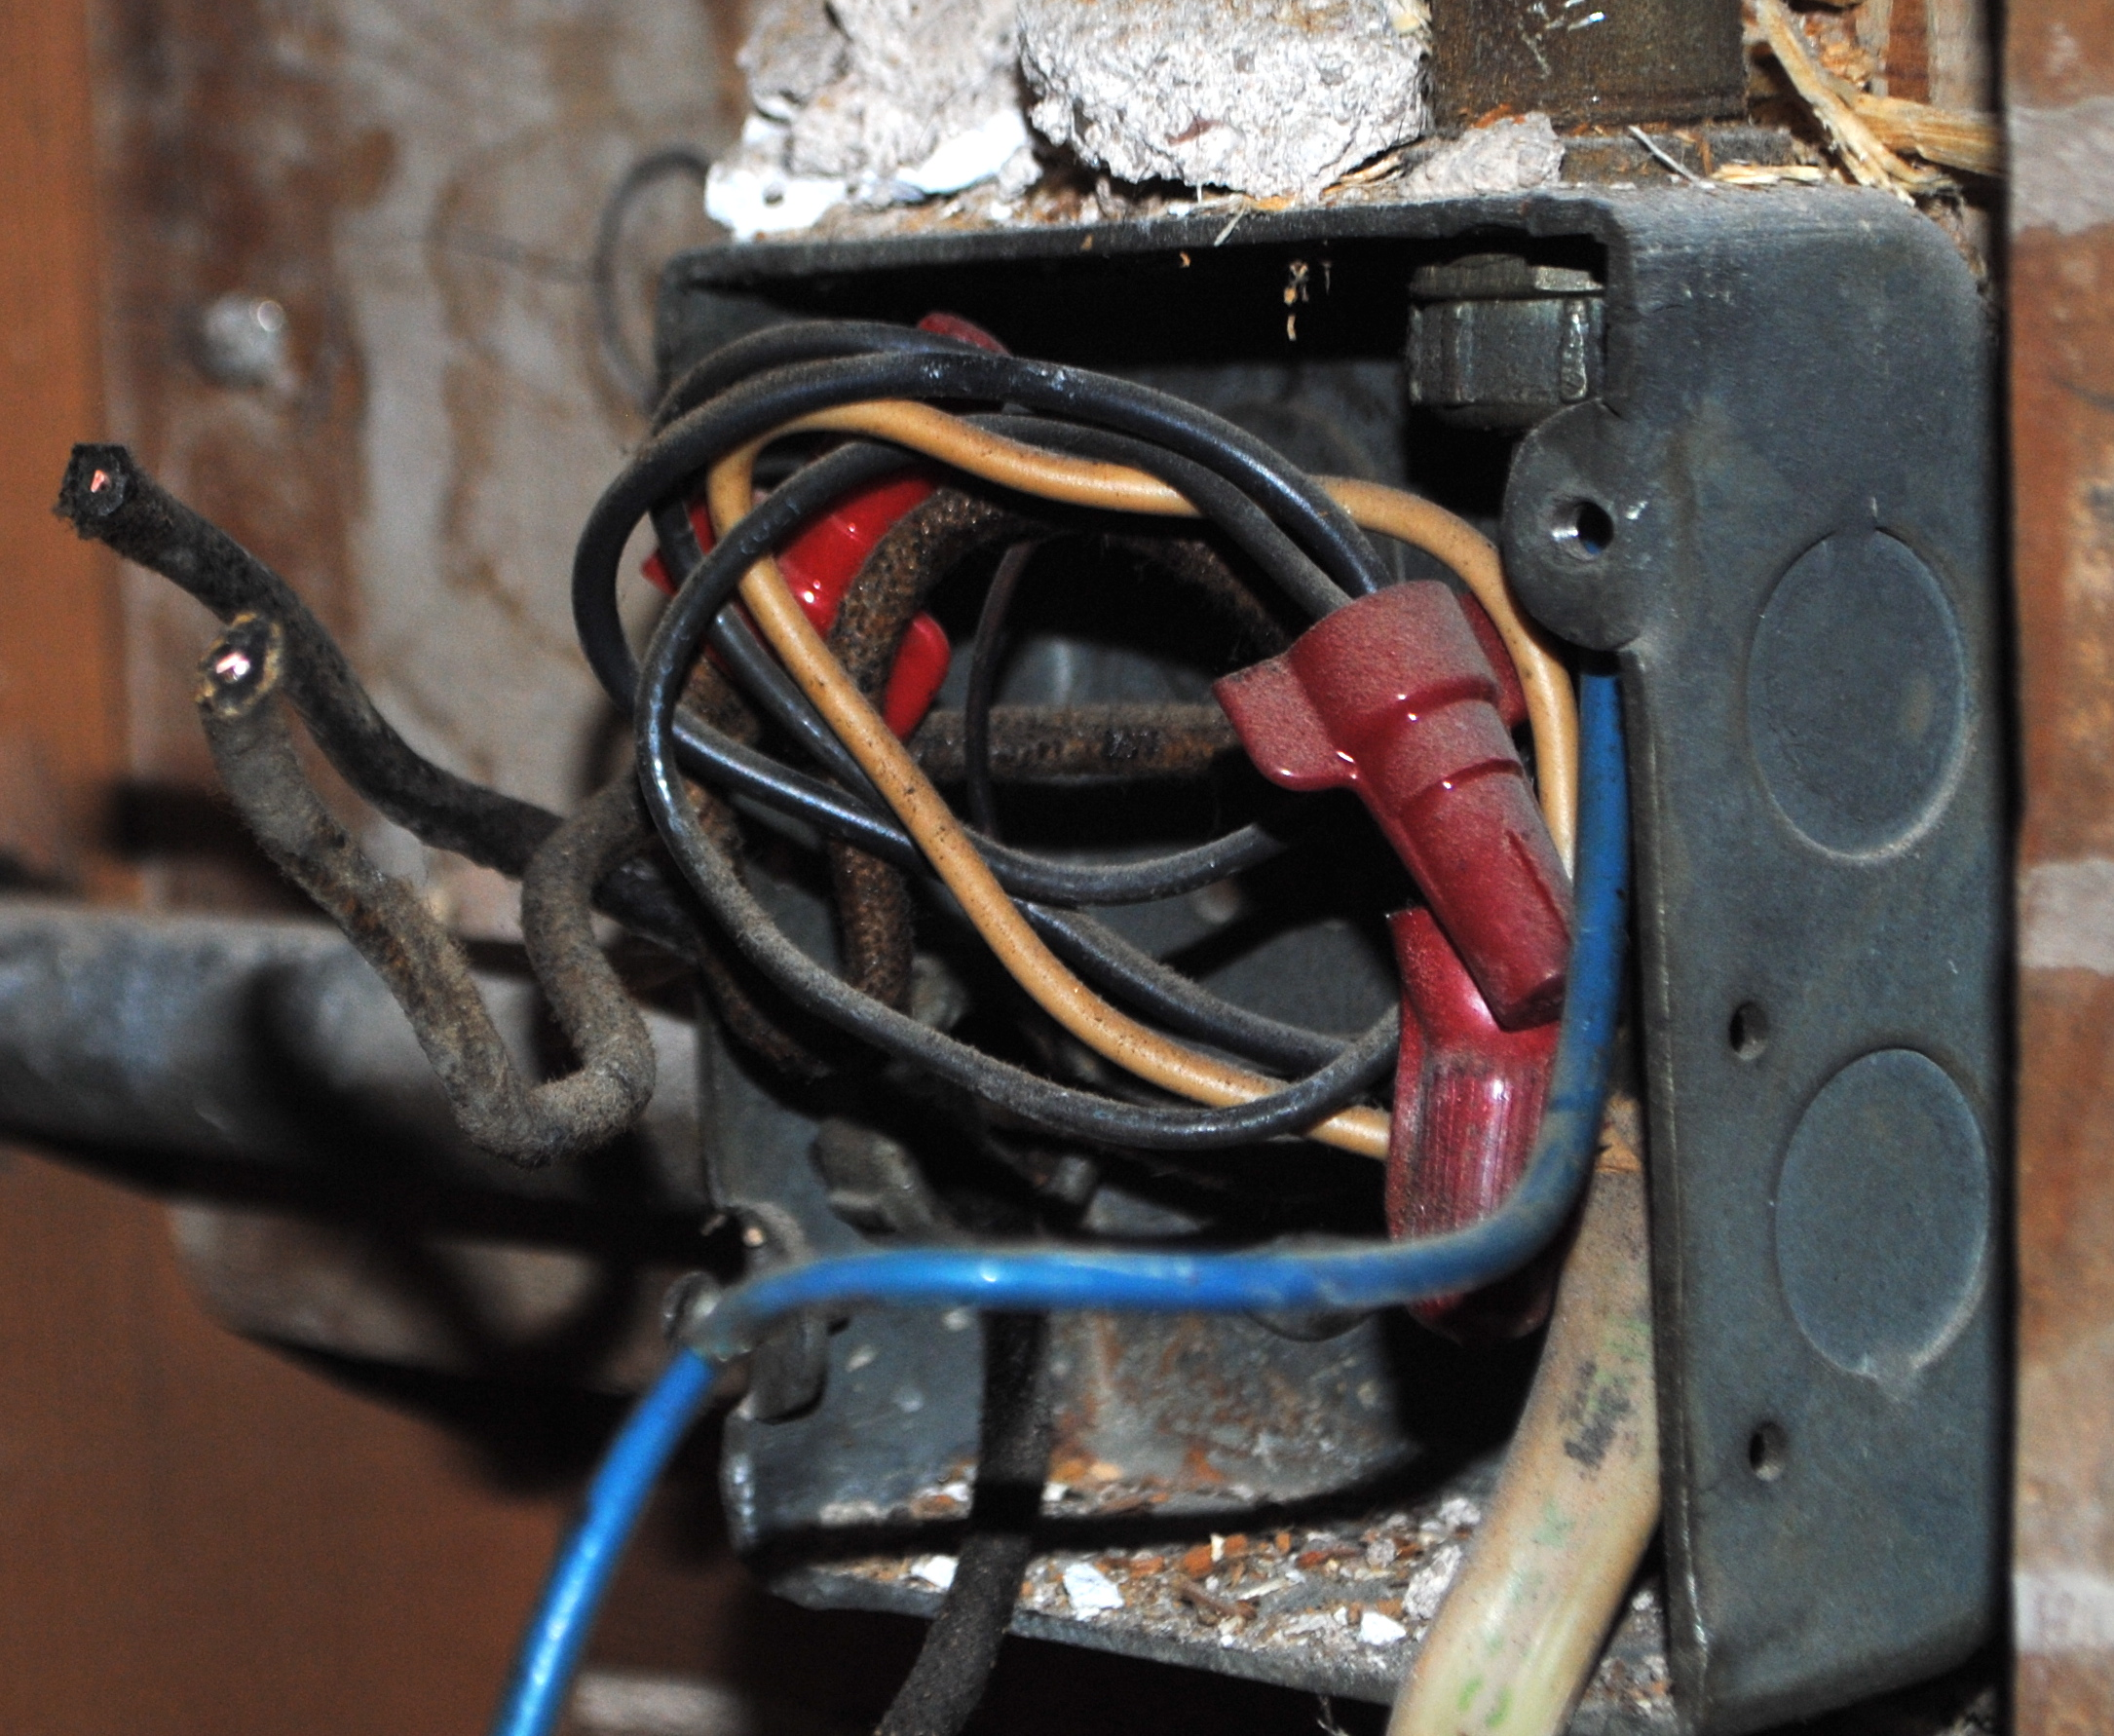 Plumbing Bungalowhutch Crazy Electrical Wiring Old Stuff John Said I Should Take A Picture Of Also Happens To Be The Source Fireworks